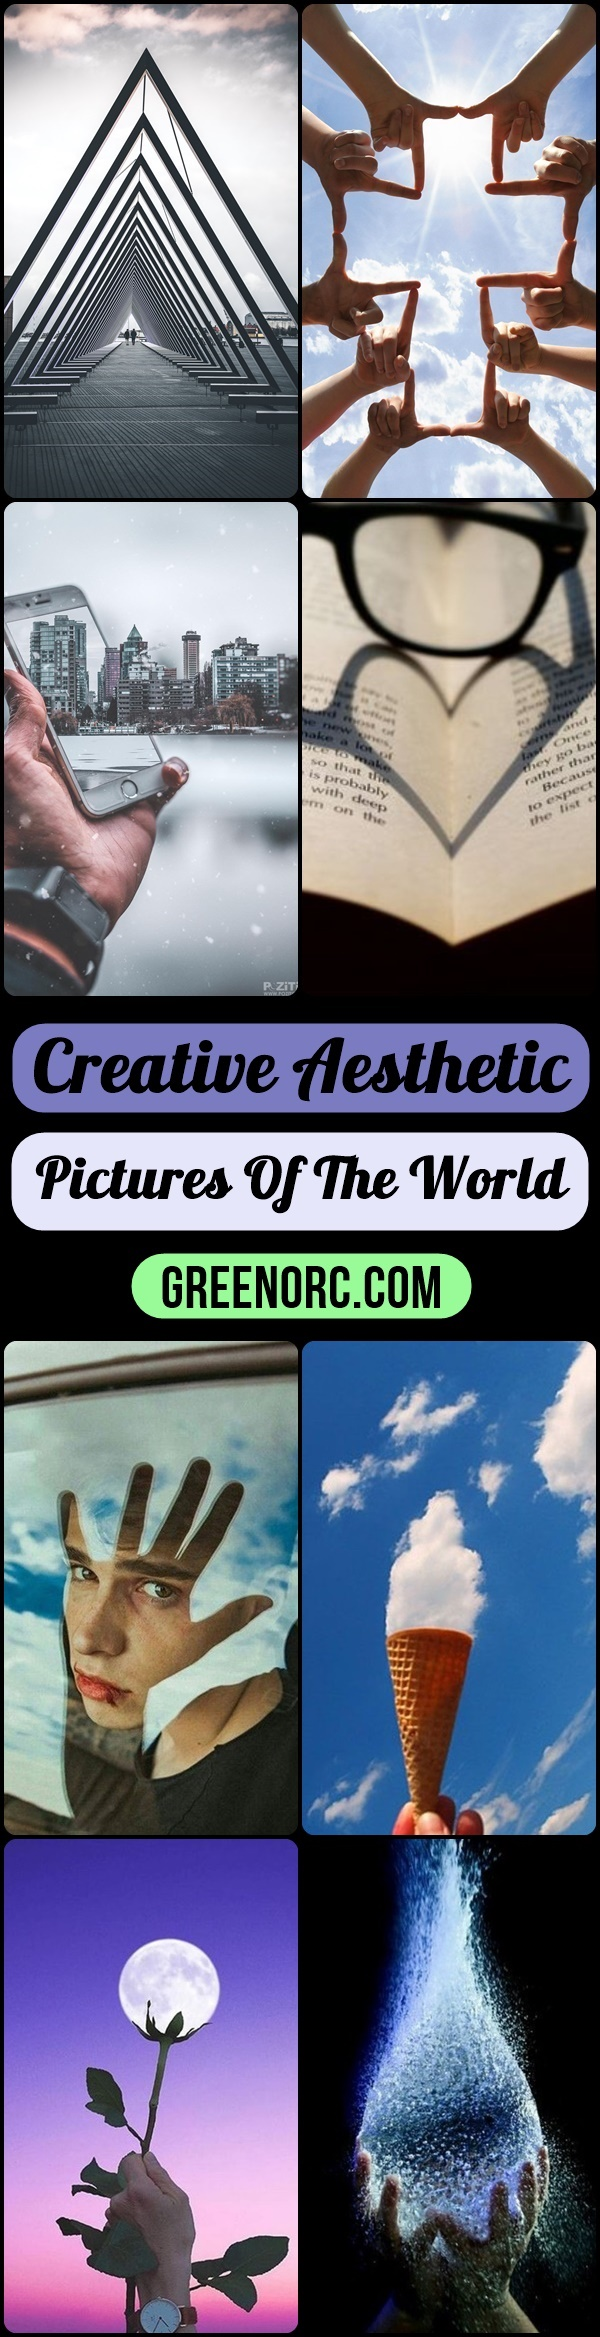 Creative Aesthetic Pictures Of The World